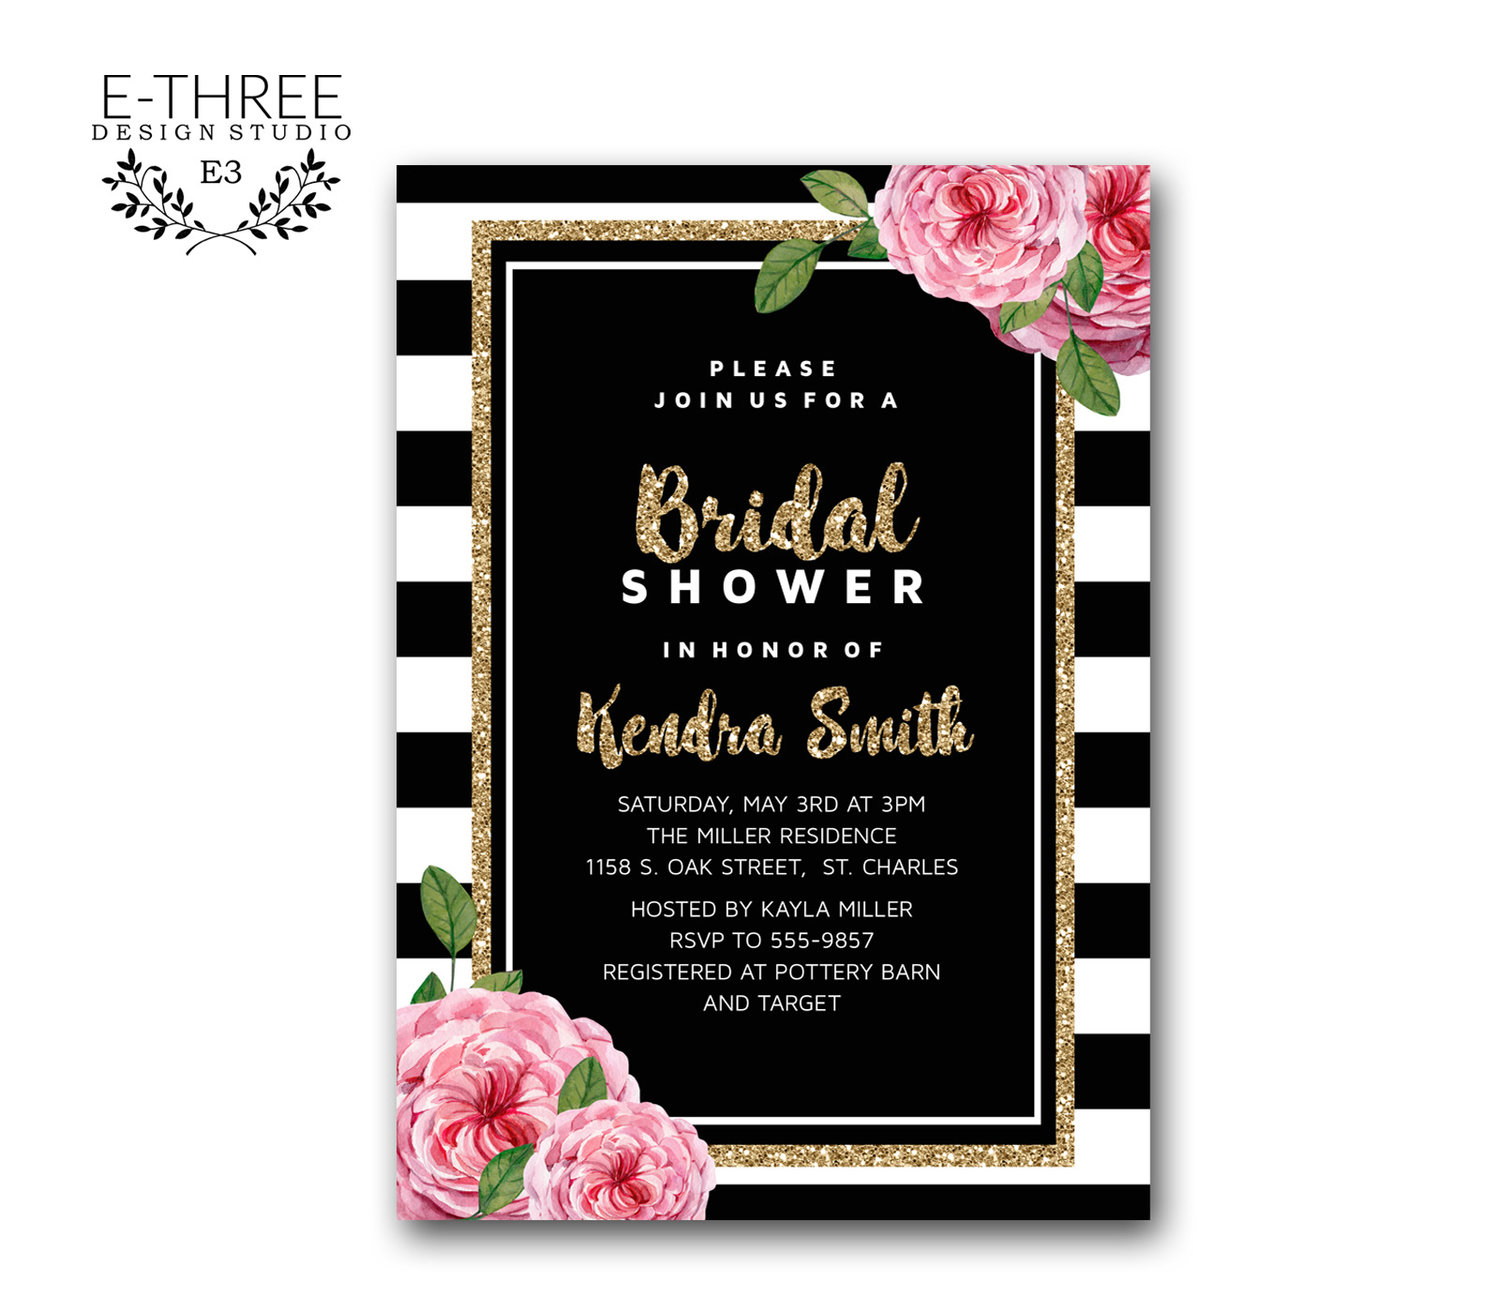 pink and gold bridal shower invitations black and white stripes modern wedding shower gold glitter floral invites